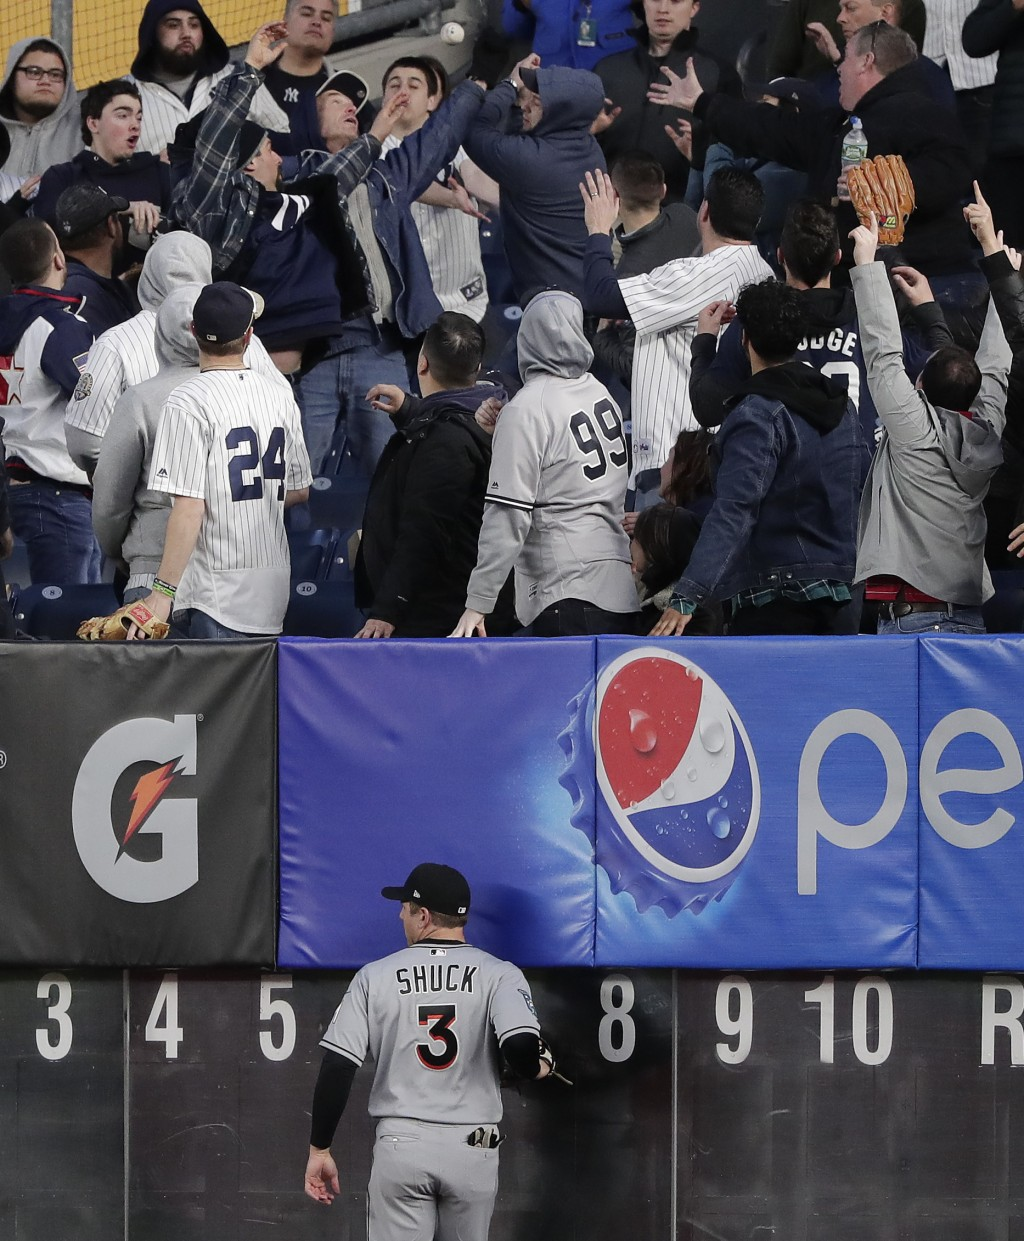 Miami Marlins right fielder J.B. Shuck (3) watches as fans grab at a solo home run by New York Yankees' Aaron Judge during the second inning of a base